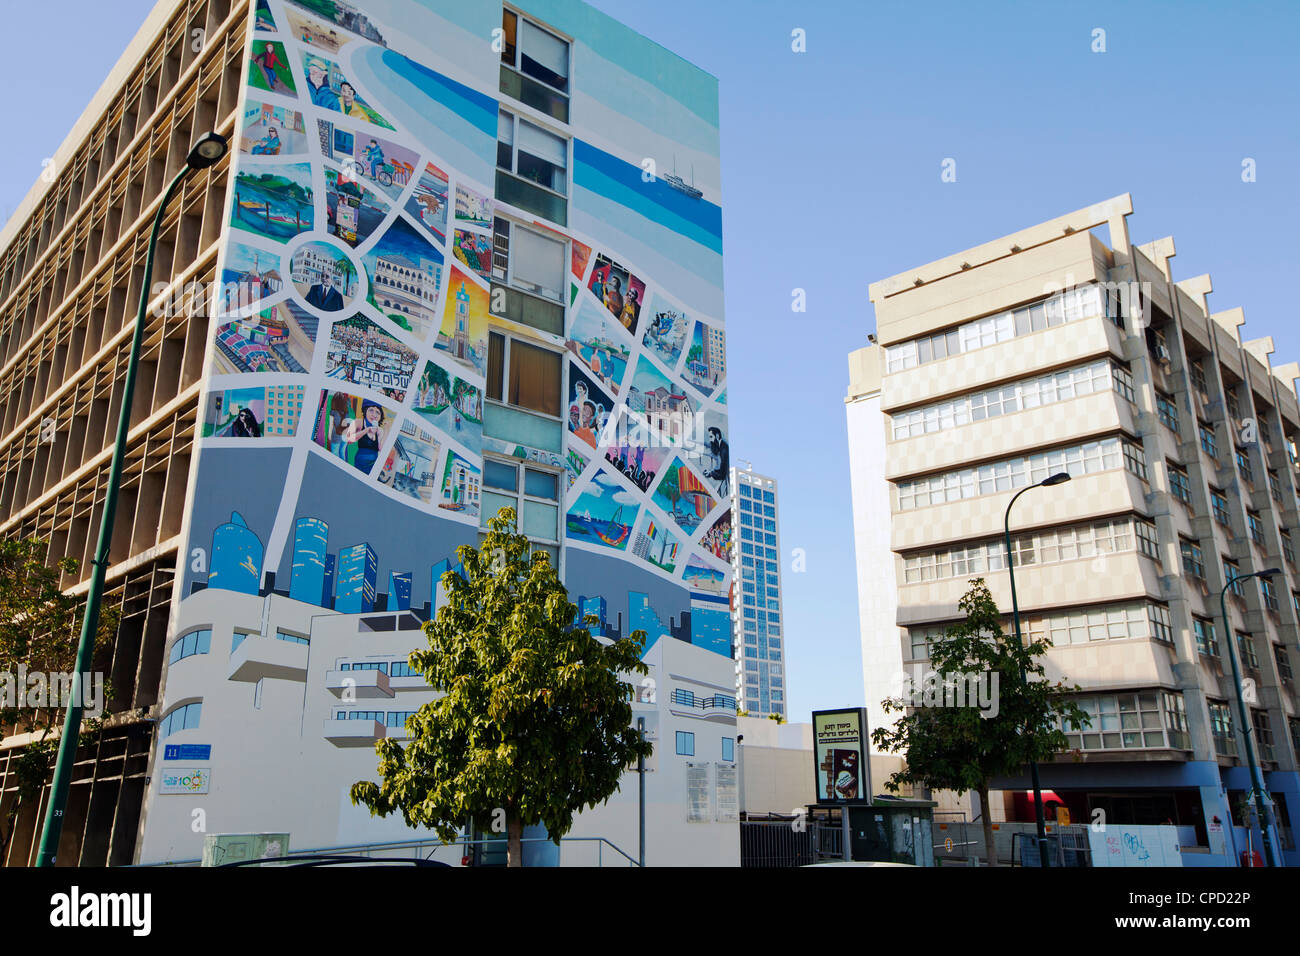 Apartment buildings in the centre of town, Tel Aviv, Israel, Middle East - Stock Image